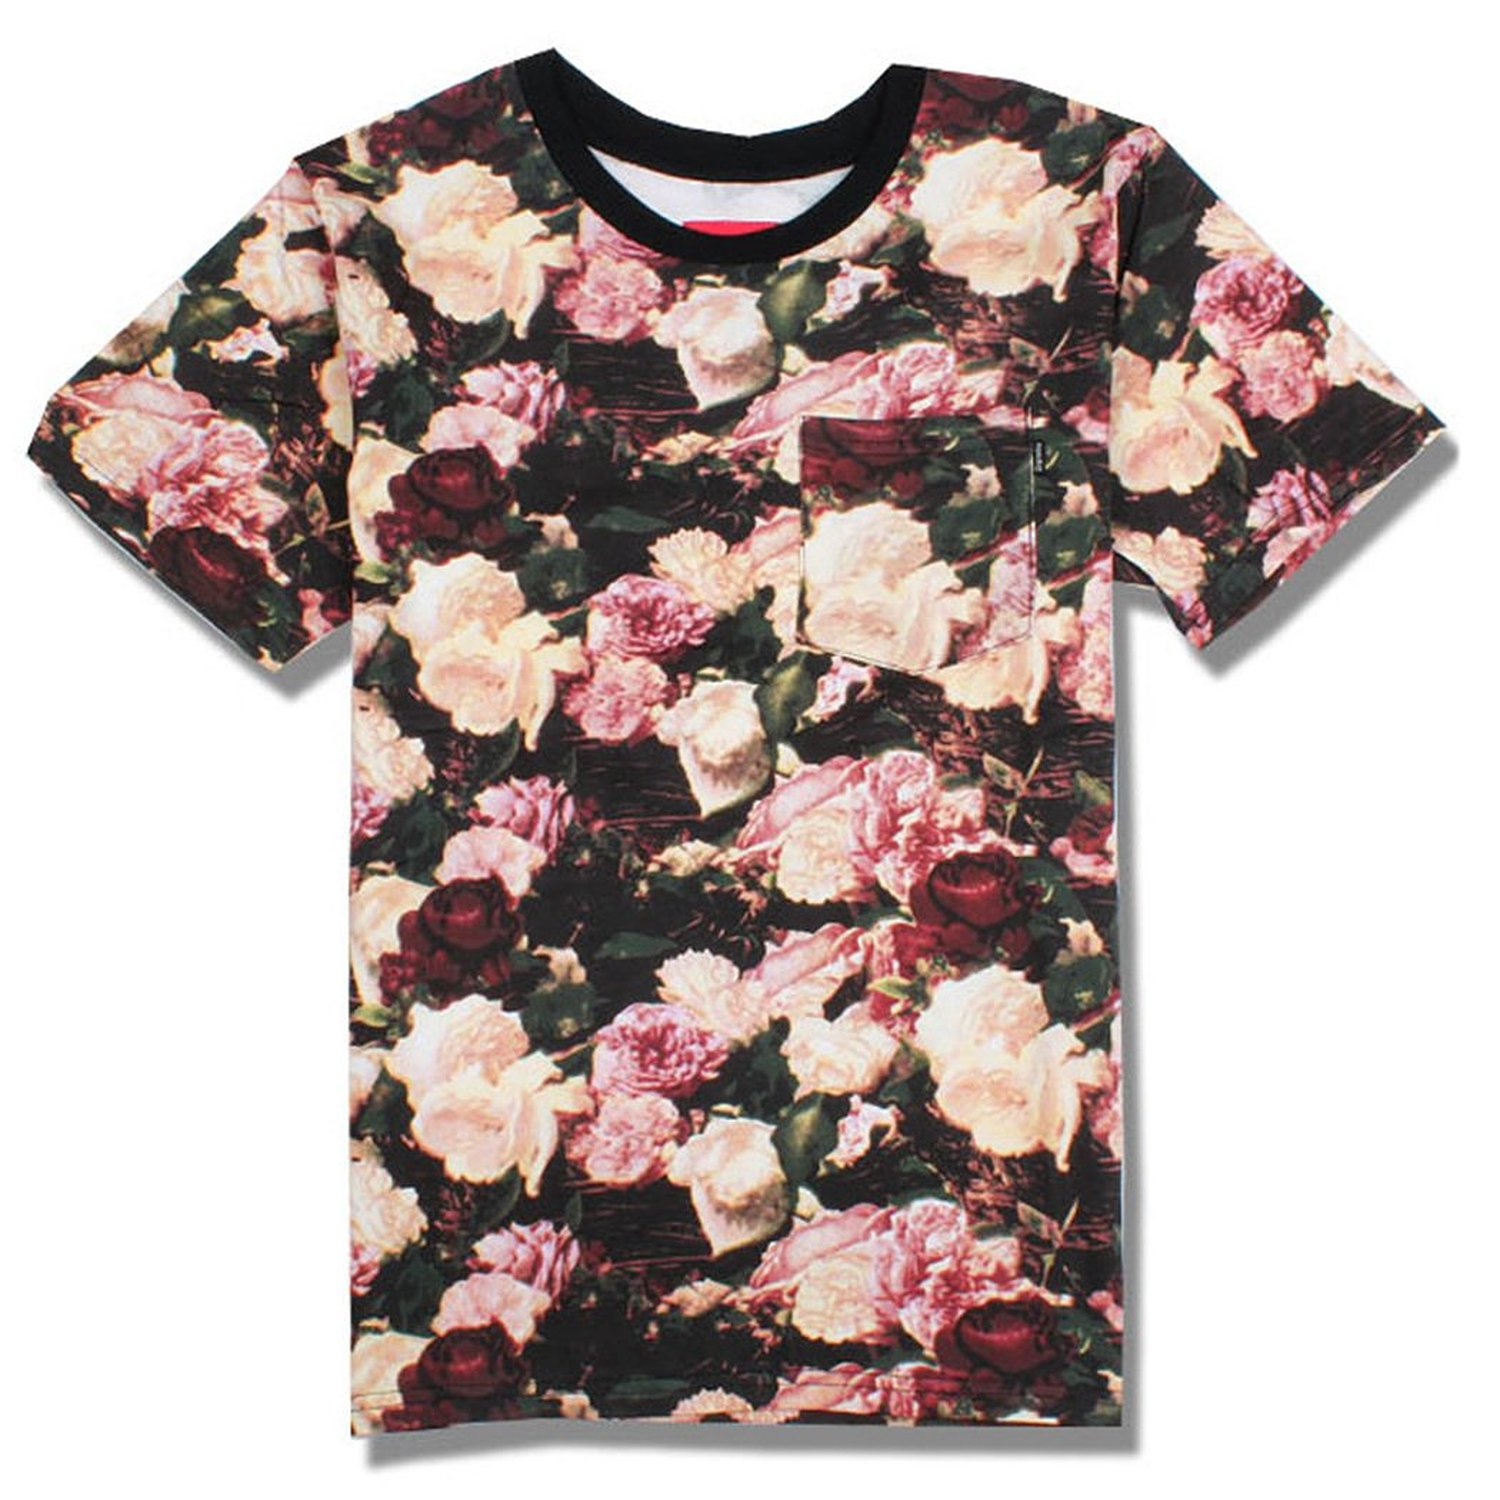 iwoo women rose flower print t shirt  s  at amazon women u2019s clothing store